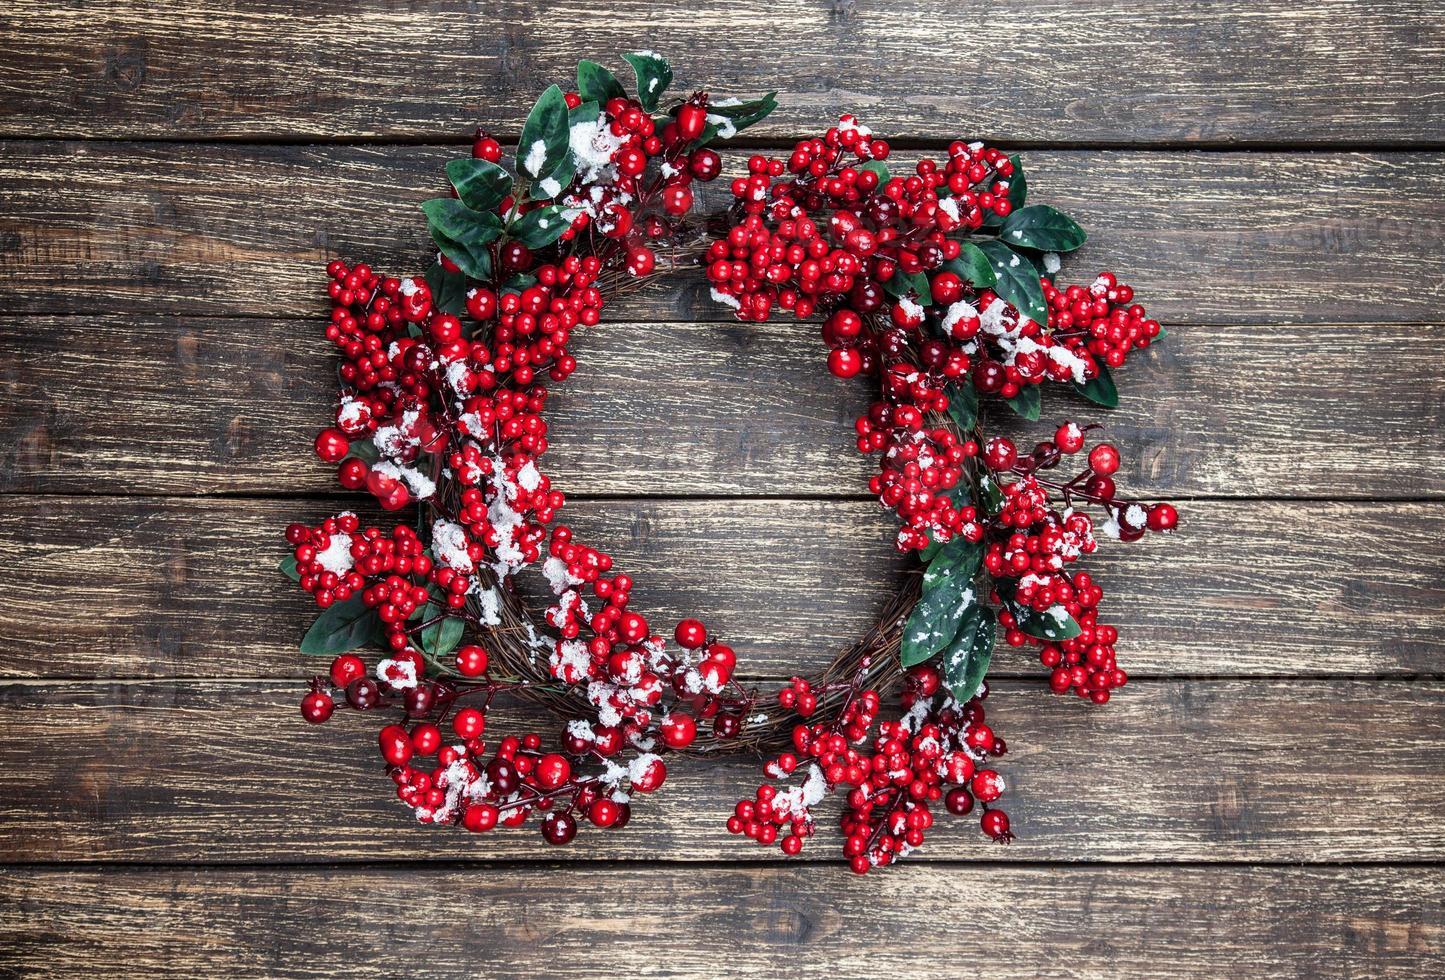 Holly christmas wreath on wooden table. photo